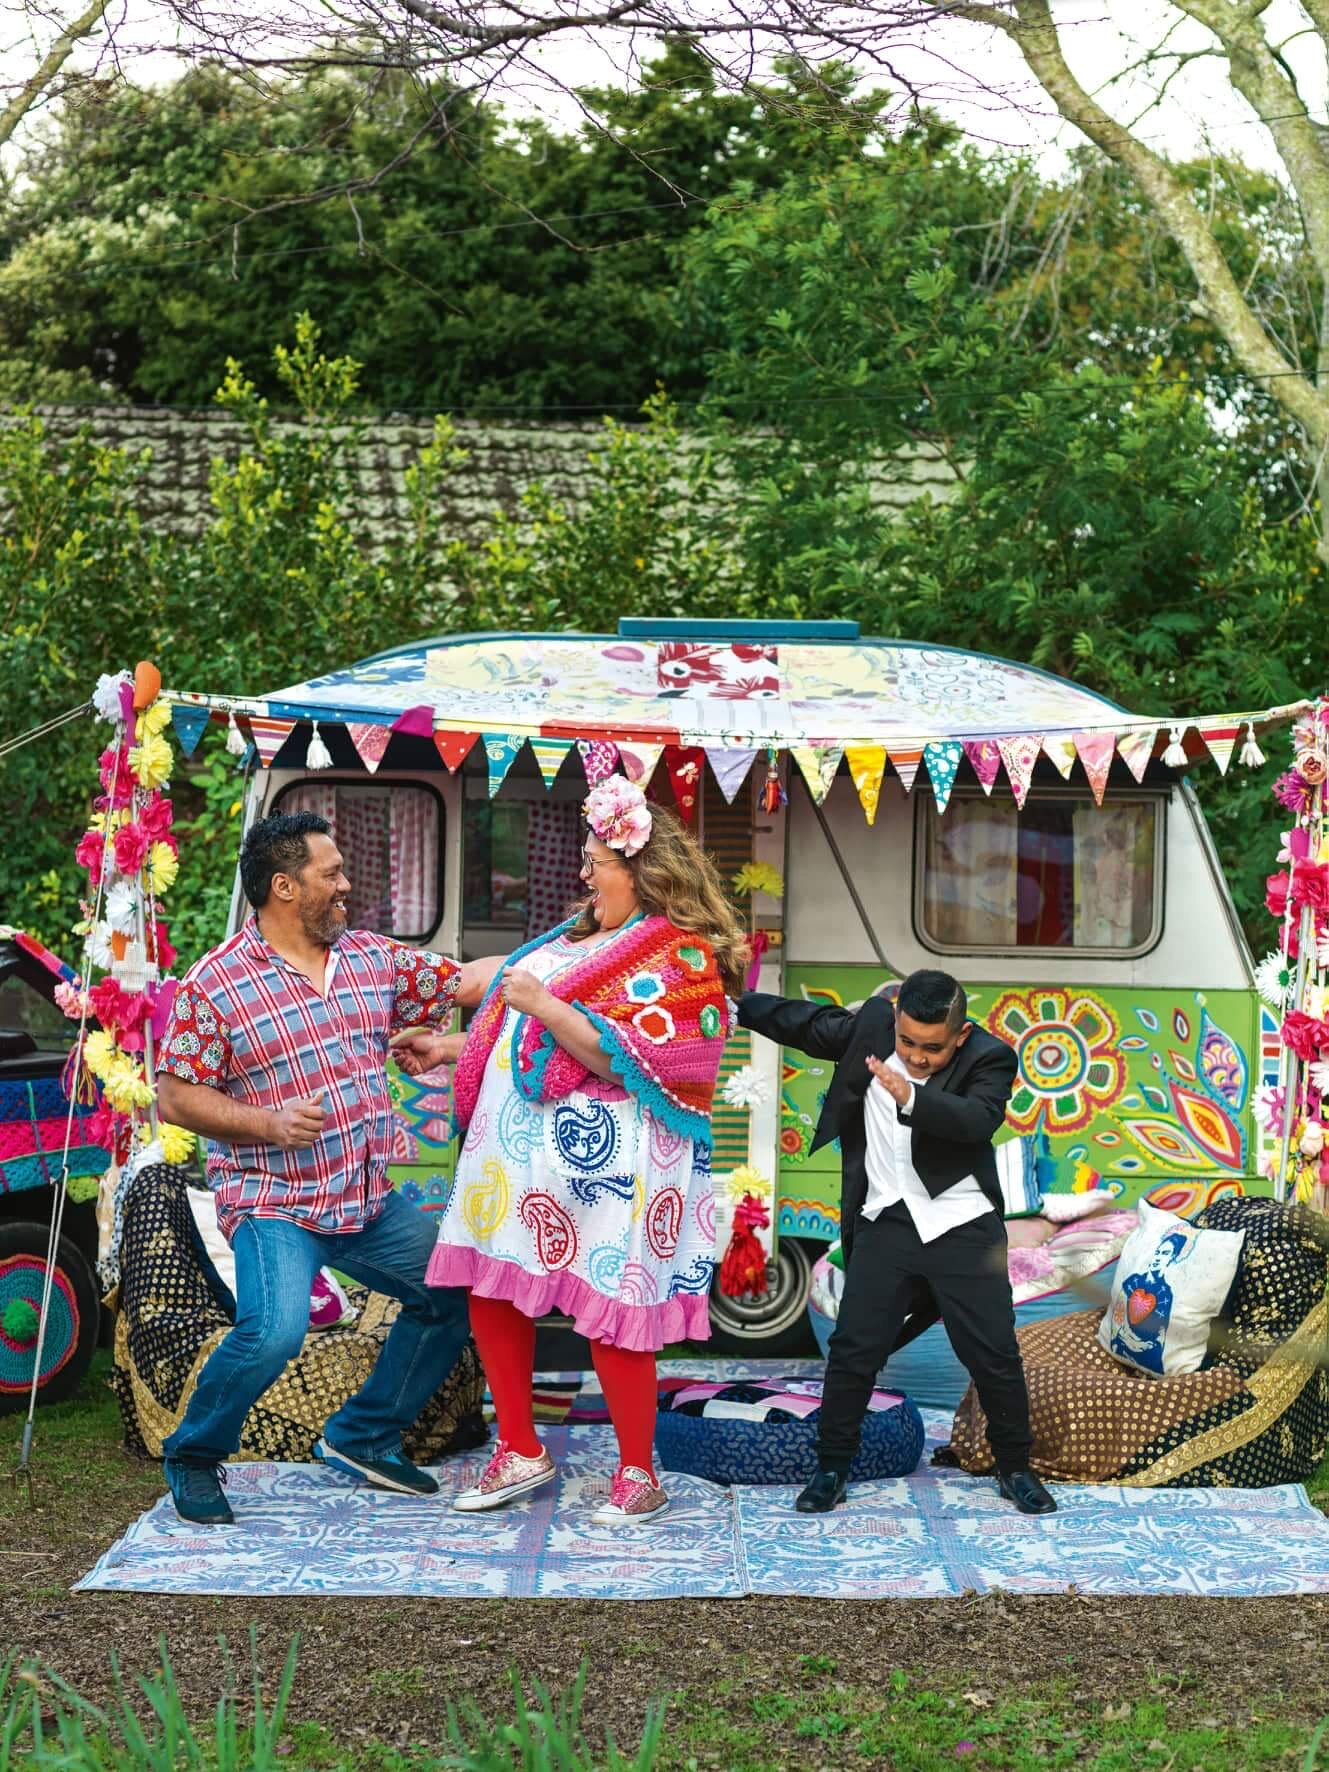 Rudi, Lissy and her grandson Christian dancing in front of their very colourful caravan, photo cred: Jane Ussher from NZ Life and Leisure